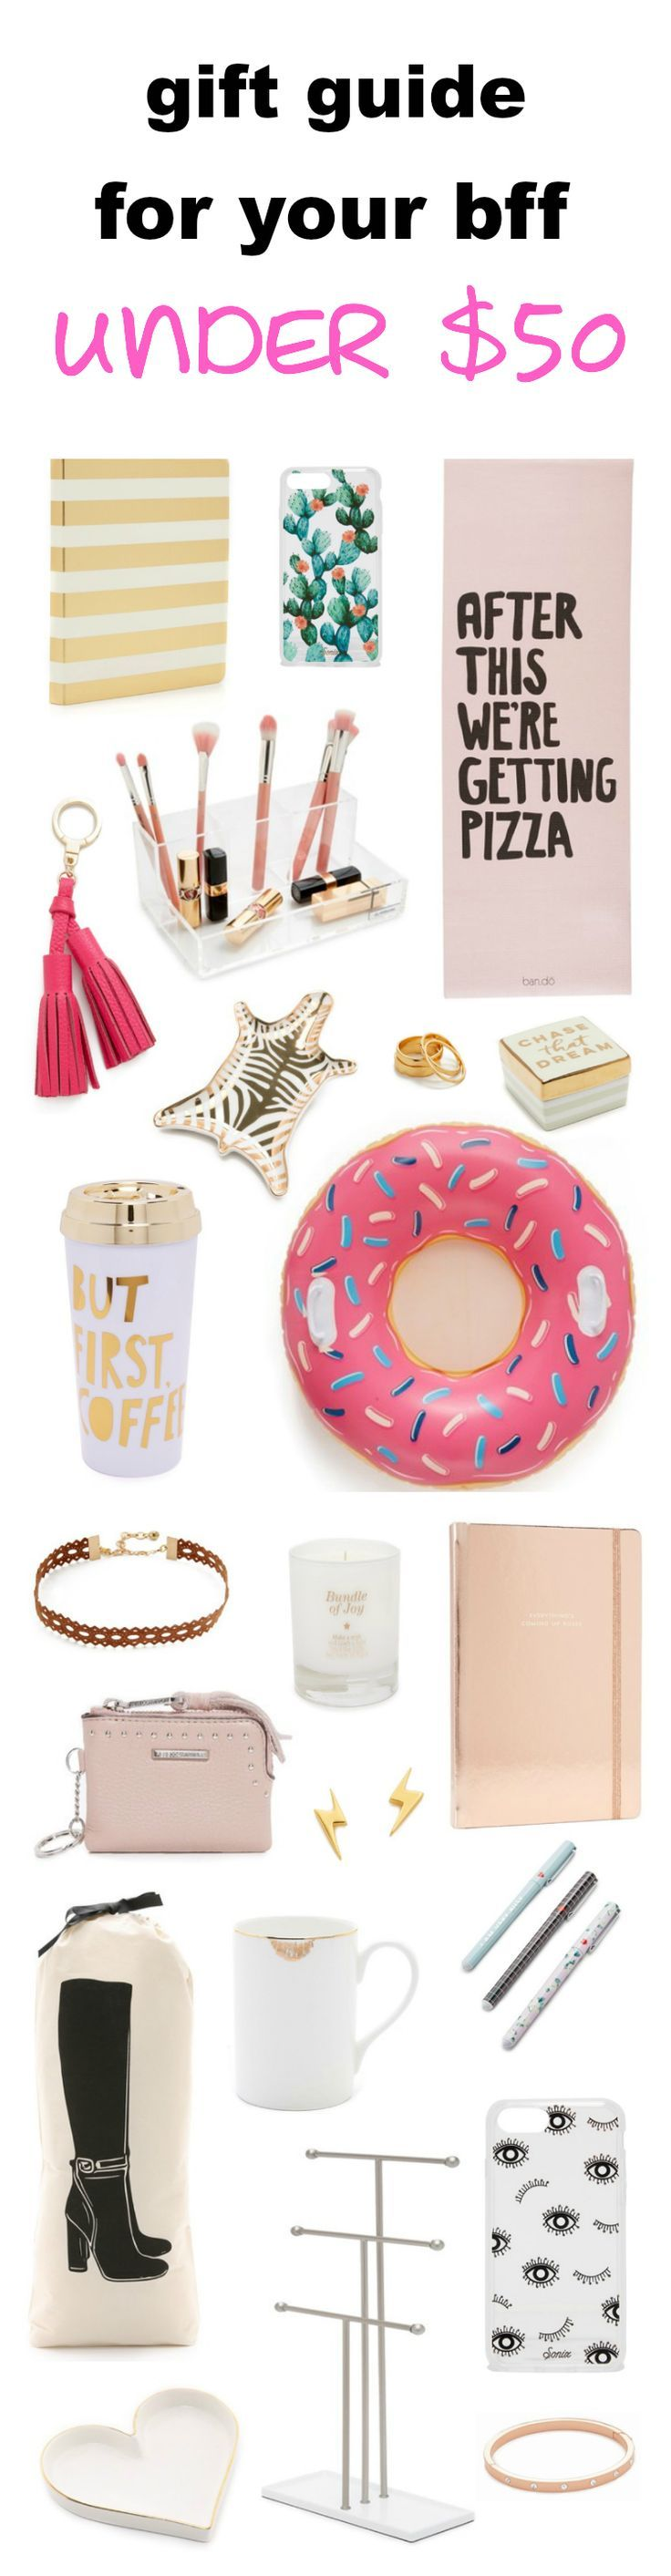 Gift Guide for Your BFF (Under $50) | Your best friend, Best gifts ...